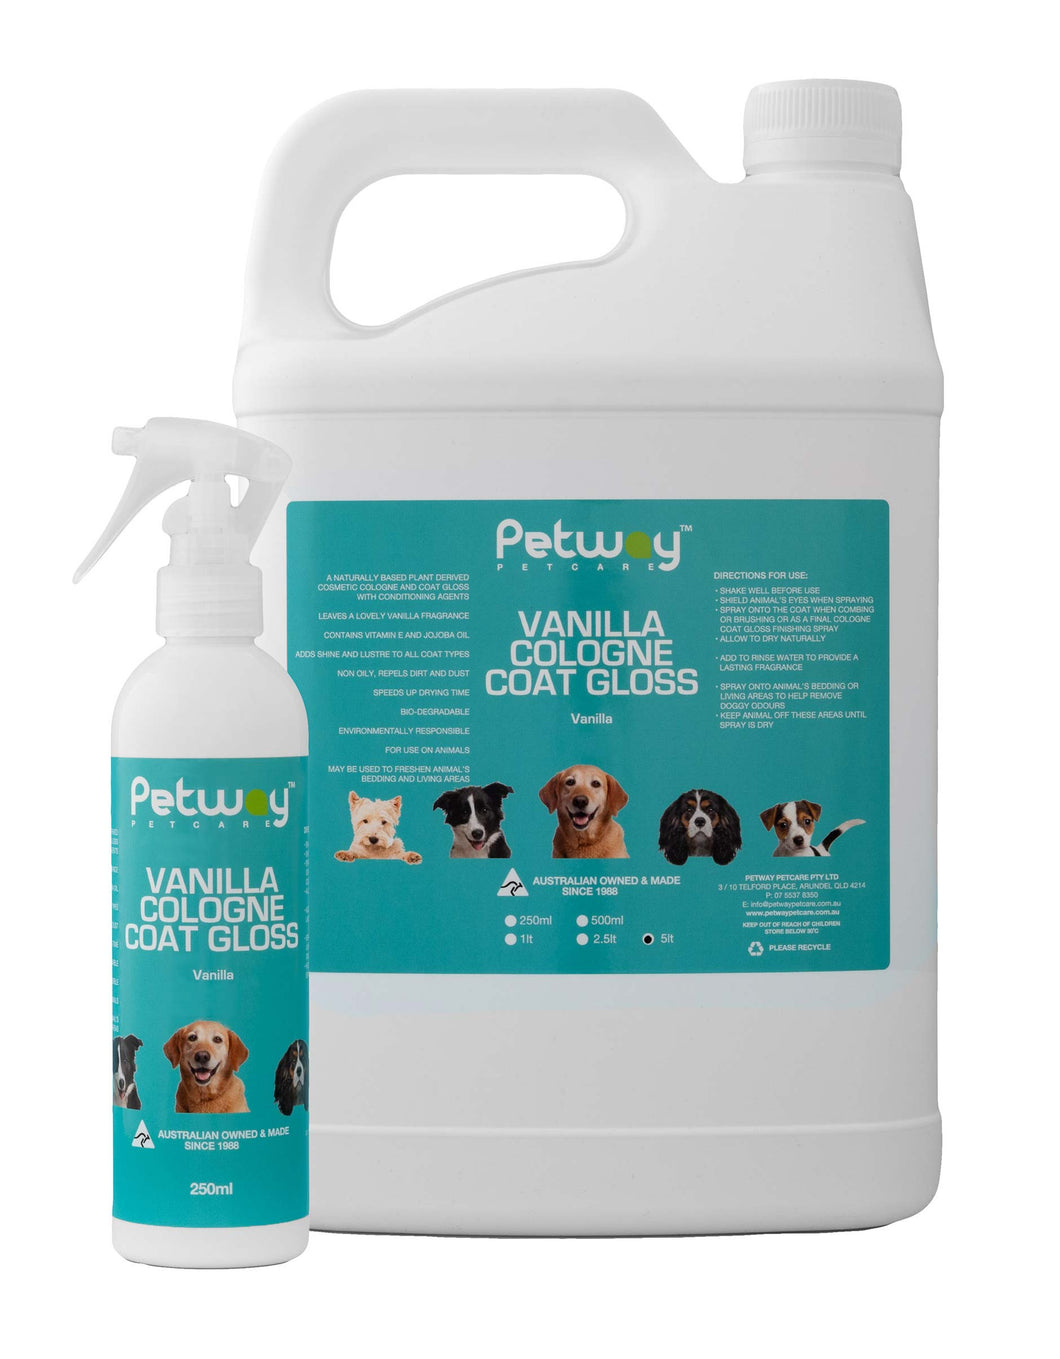 Petway Vanilla Cologne Coat Gloss 1L